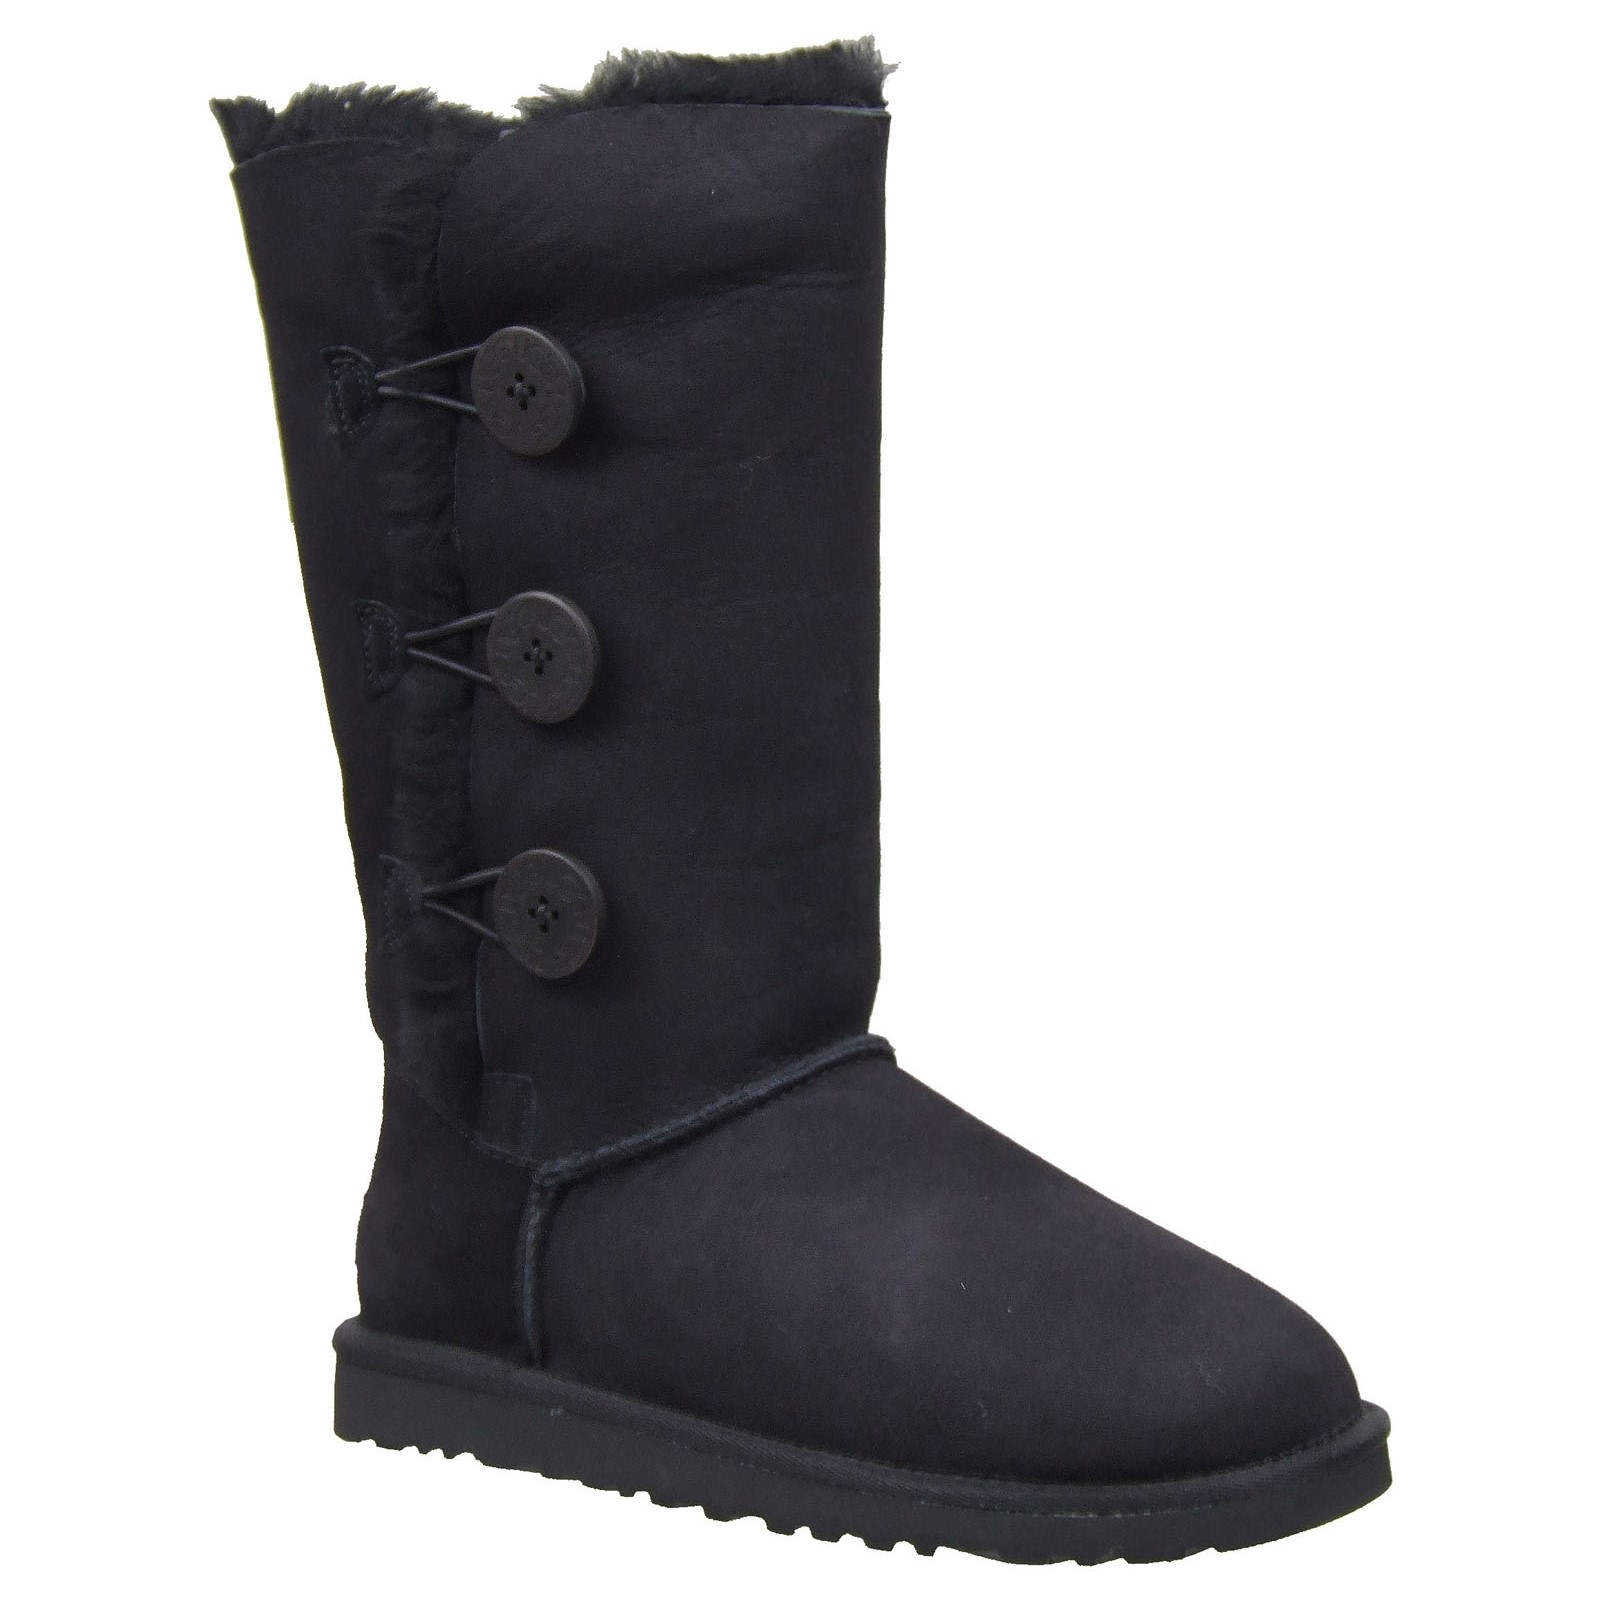 Women's Uggs, Bailey Button Triplet boot